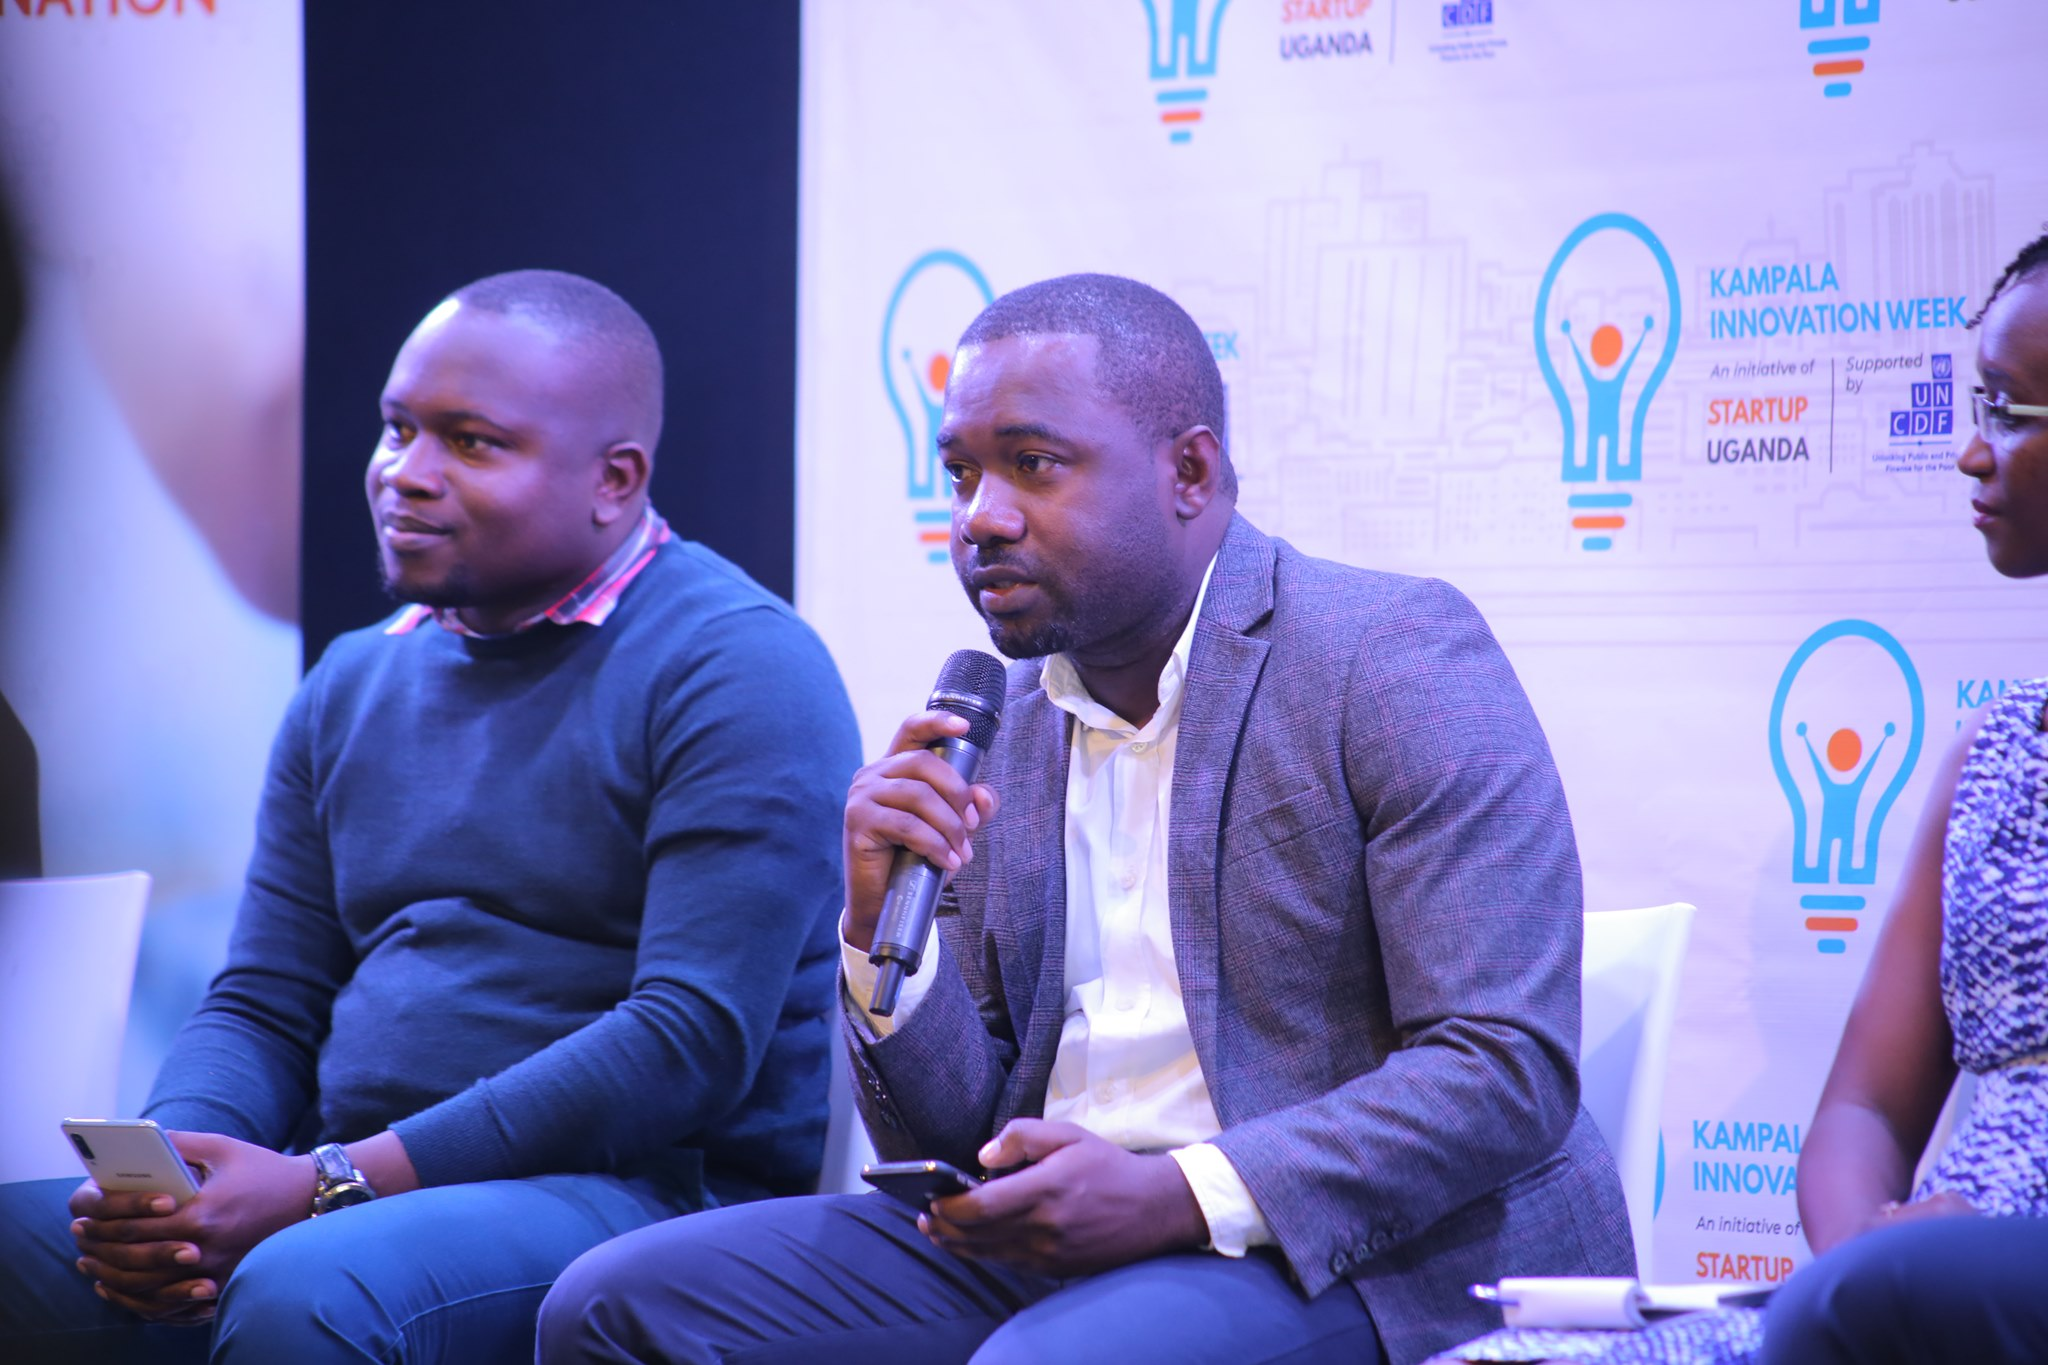 Richard Zulu & CK Japeth during the press conference to announce the Kampala Innovation Week